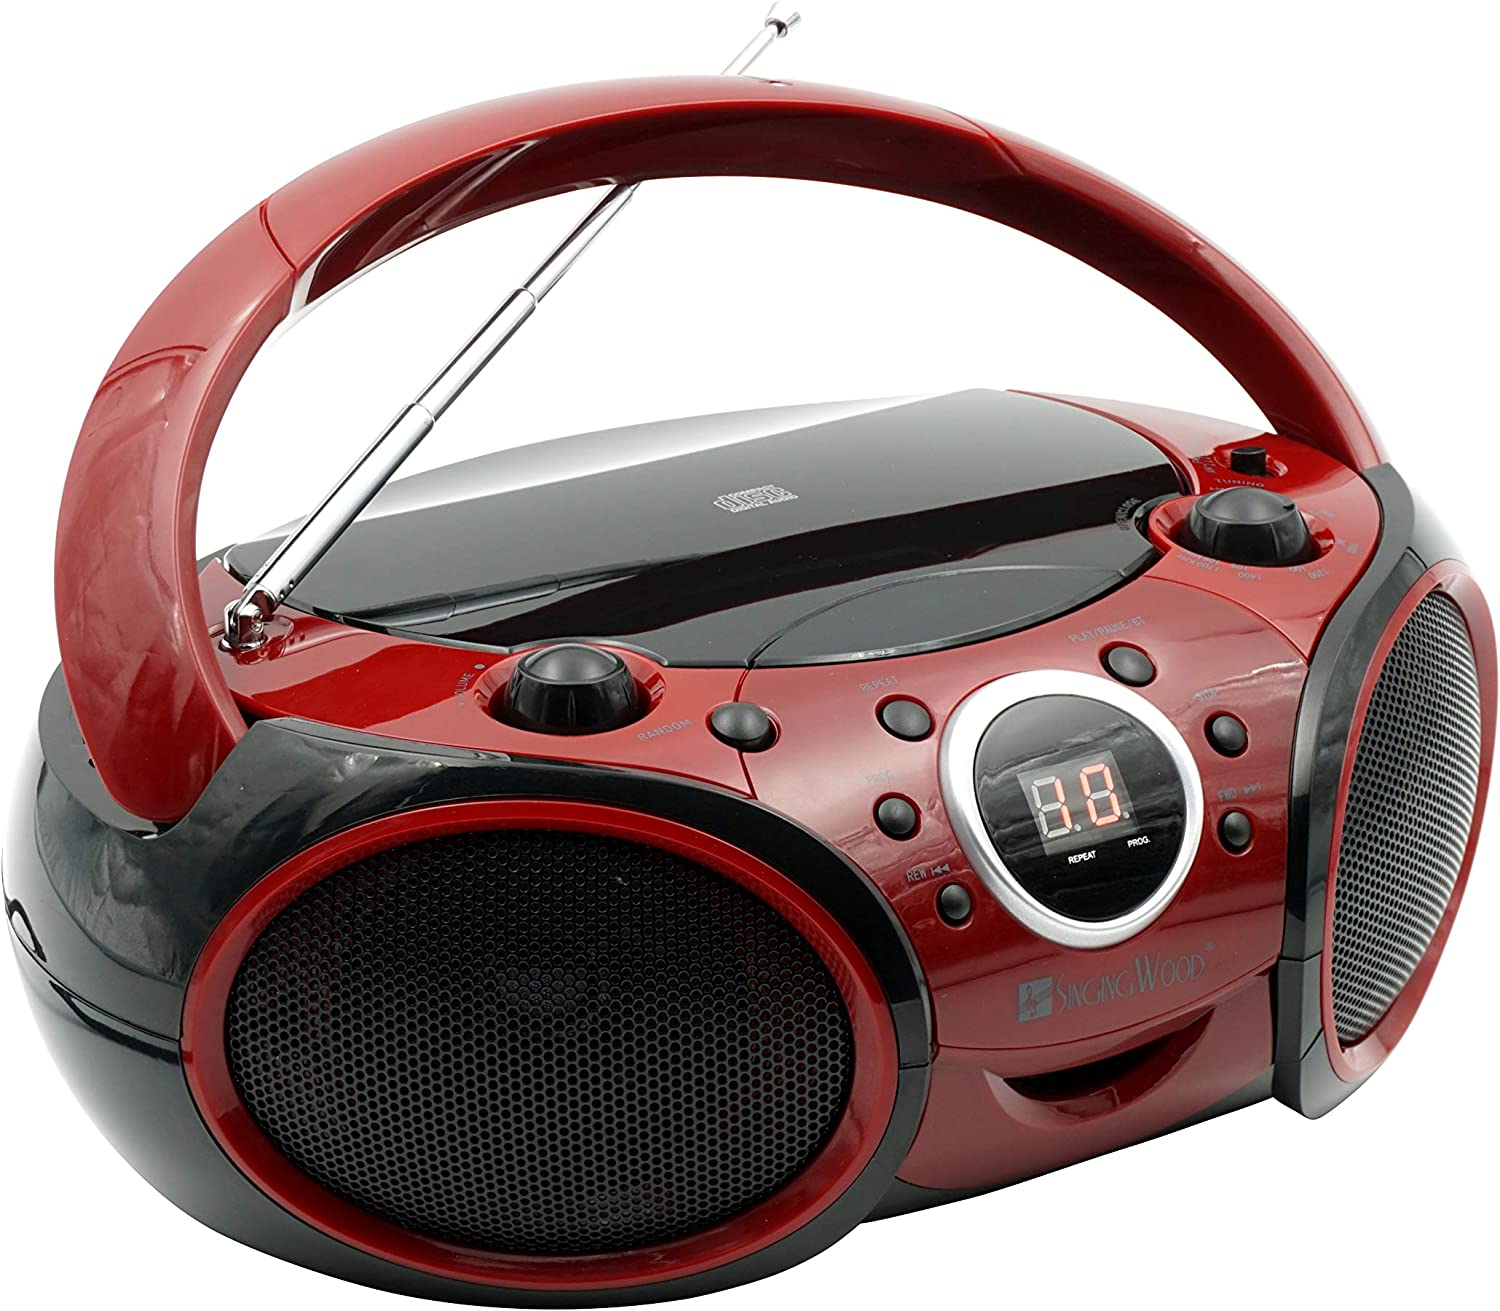 SINGING WOOD CD, CD-R/RW Player Portable/w Bluetooth Analog Tuning AM/FM Radio Aux Input, Headset Jack, Foldable Carrying Handle (Firemist Red)